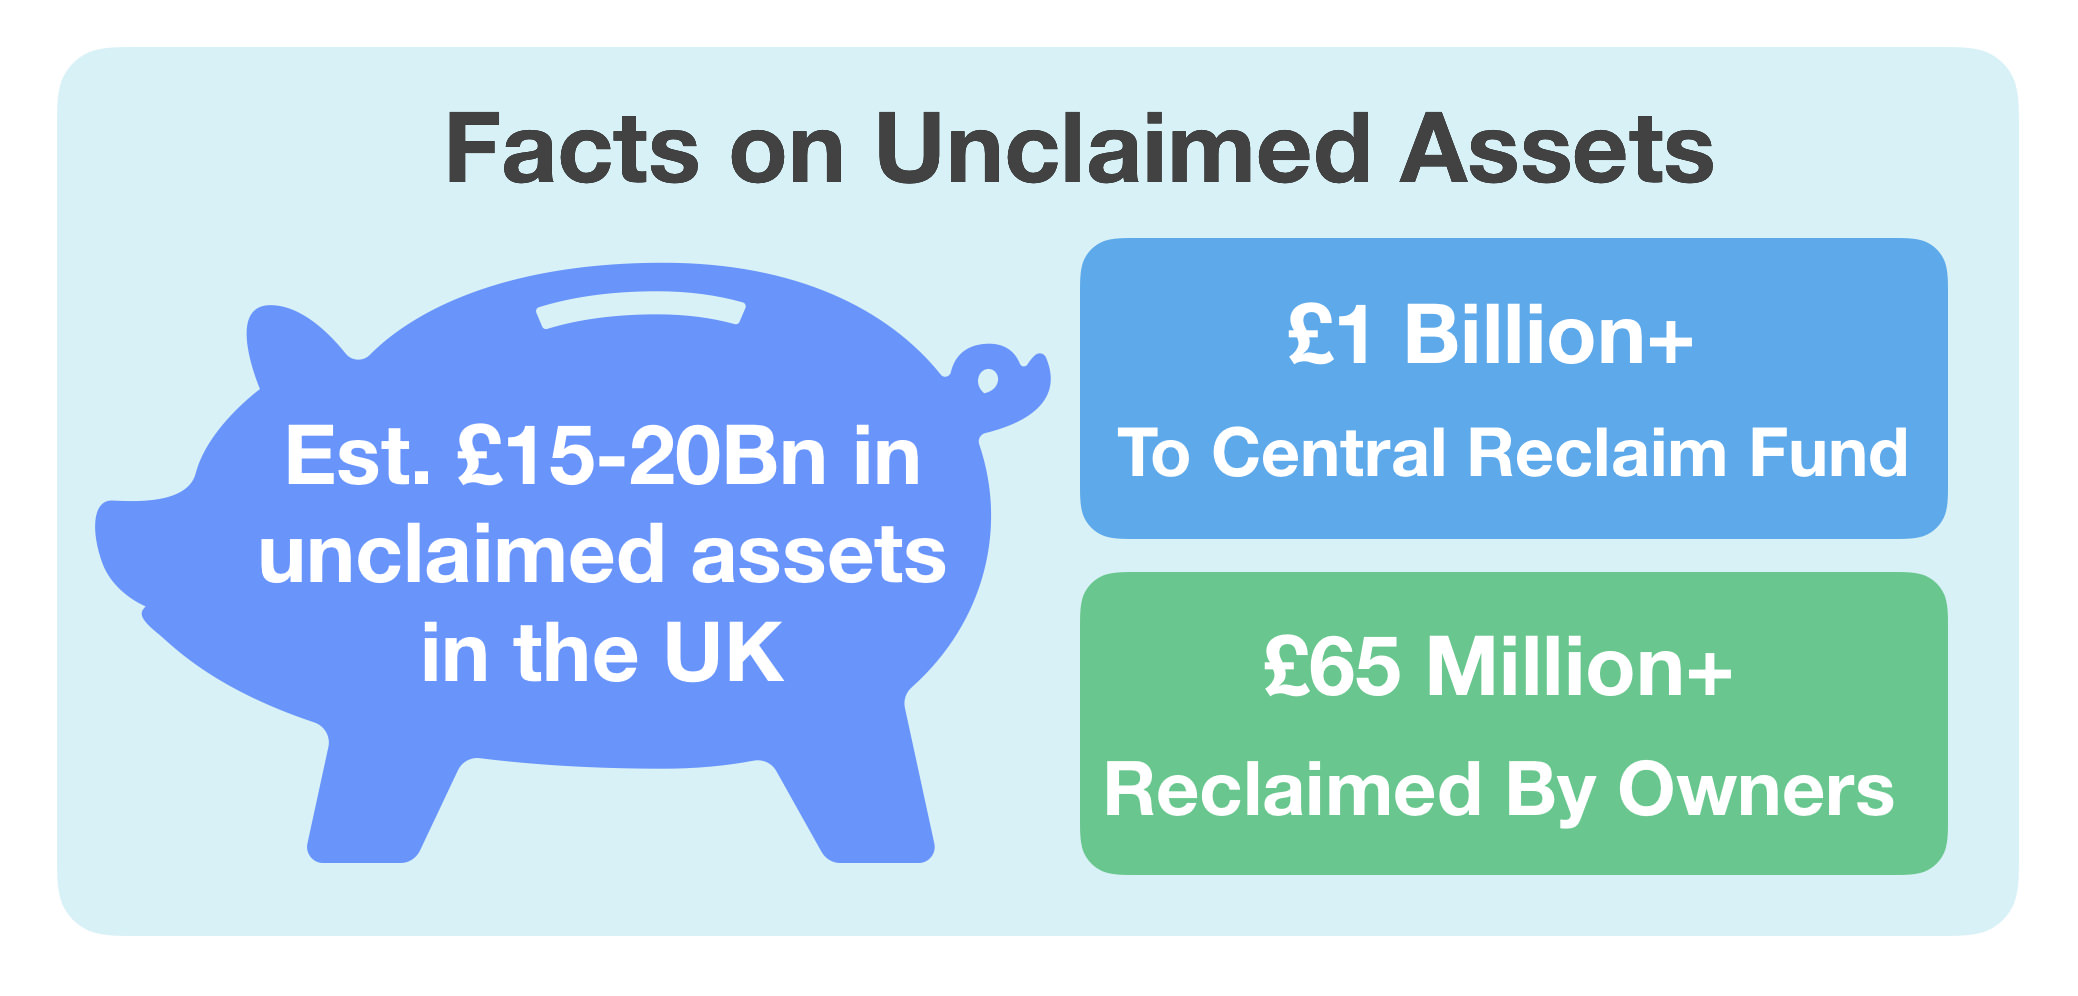 Unclaimed Assets in UK Facts